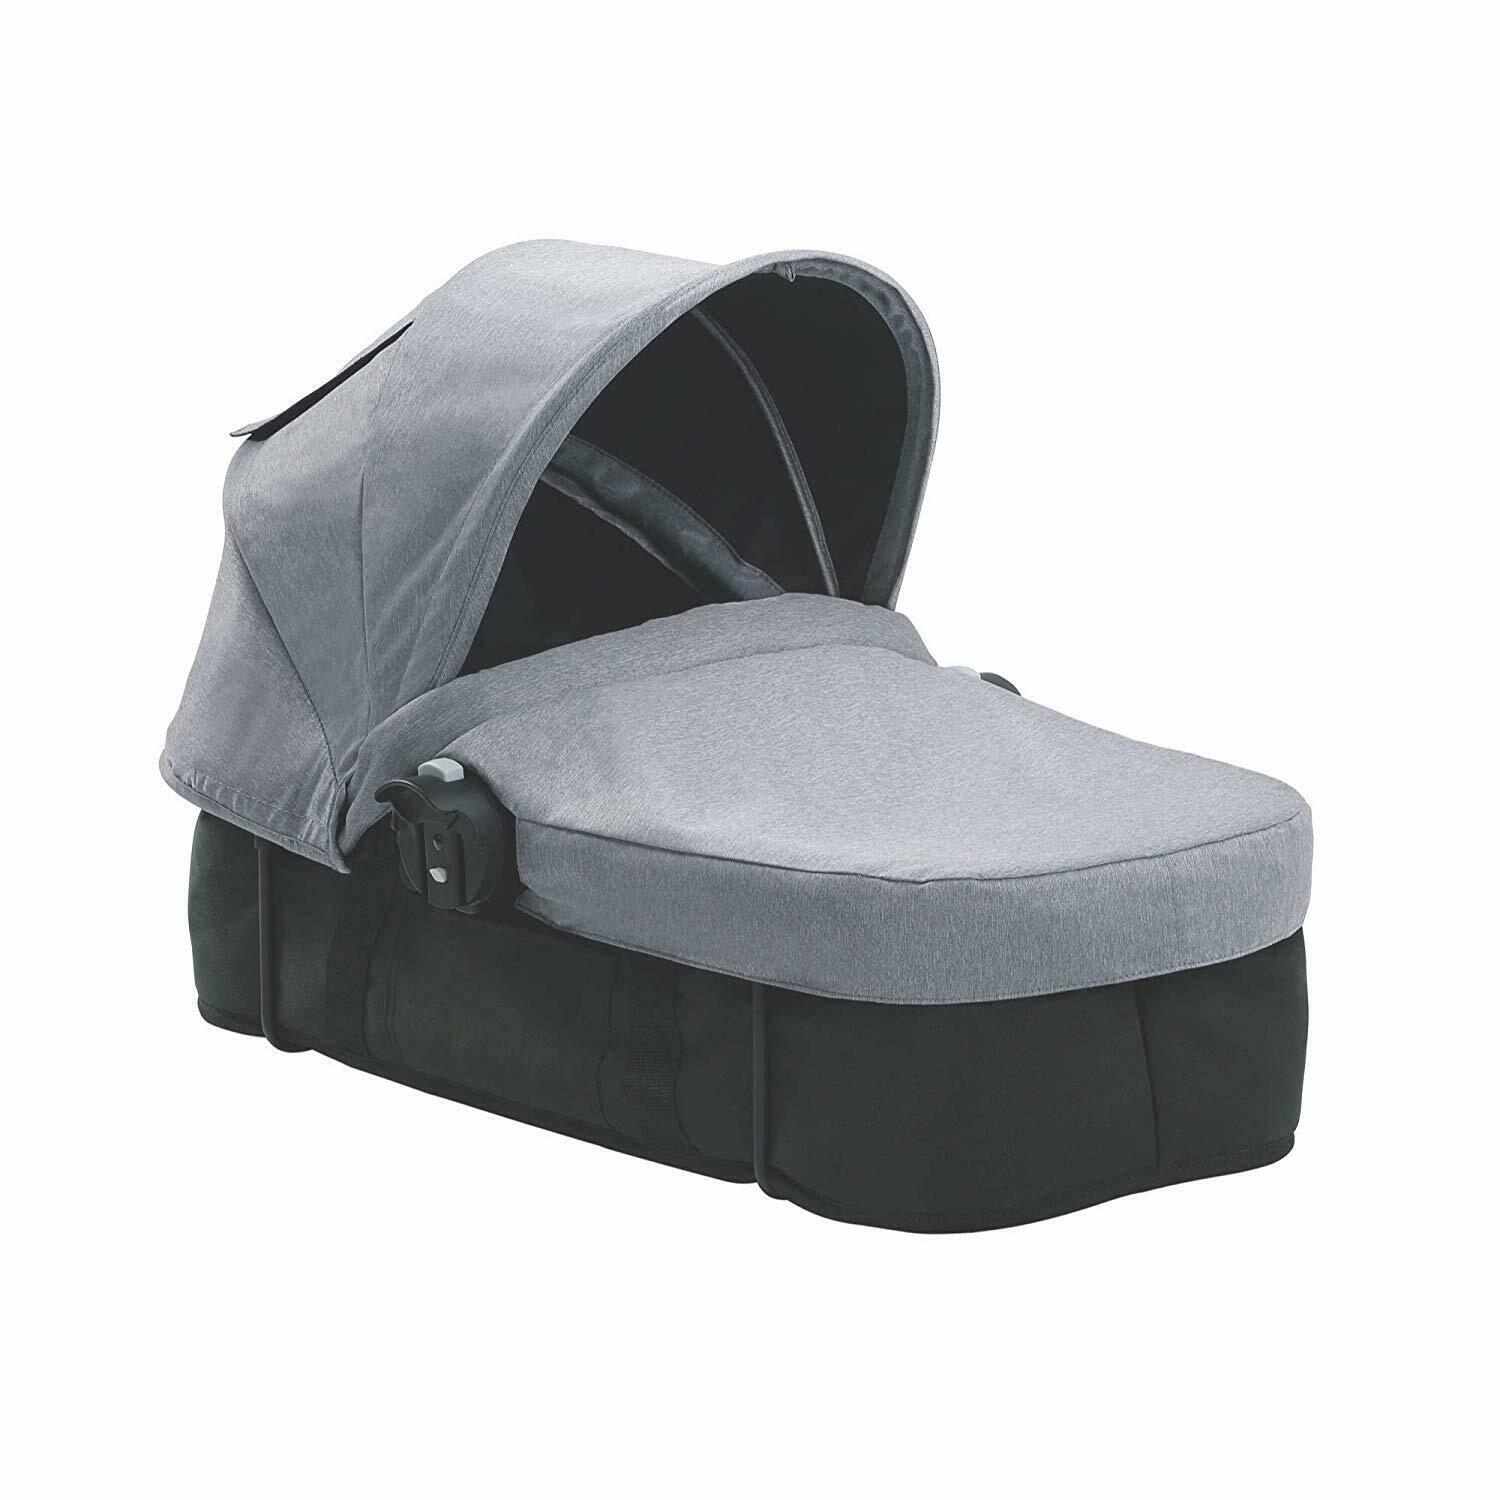 Baby Jogger City Select Pram Kit - Slate